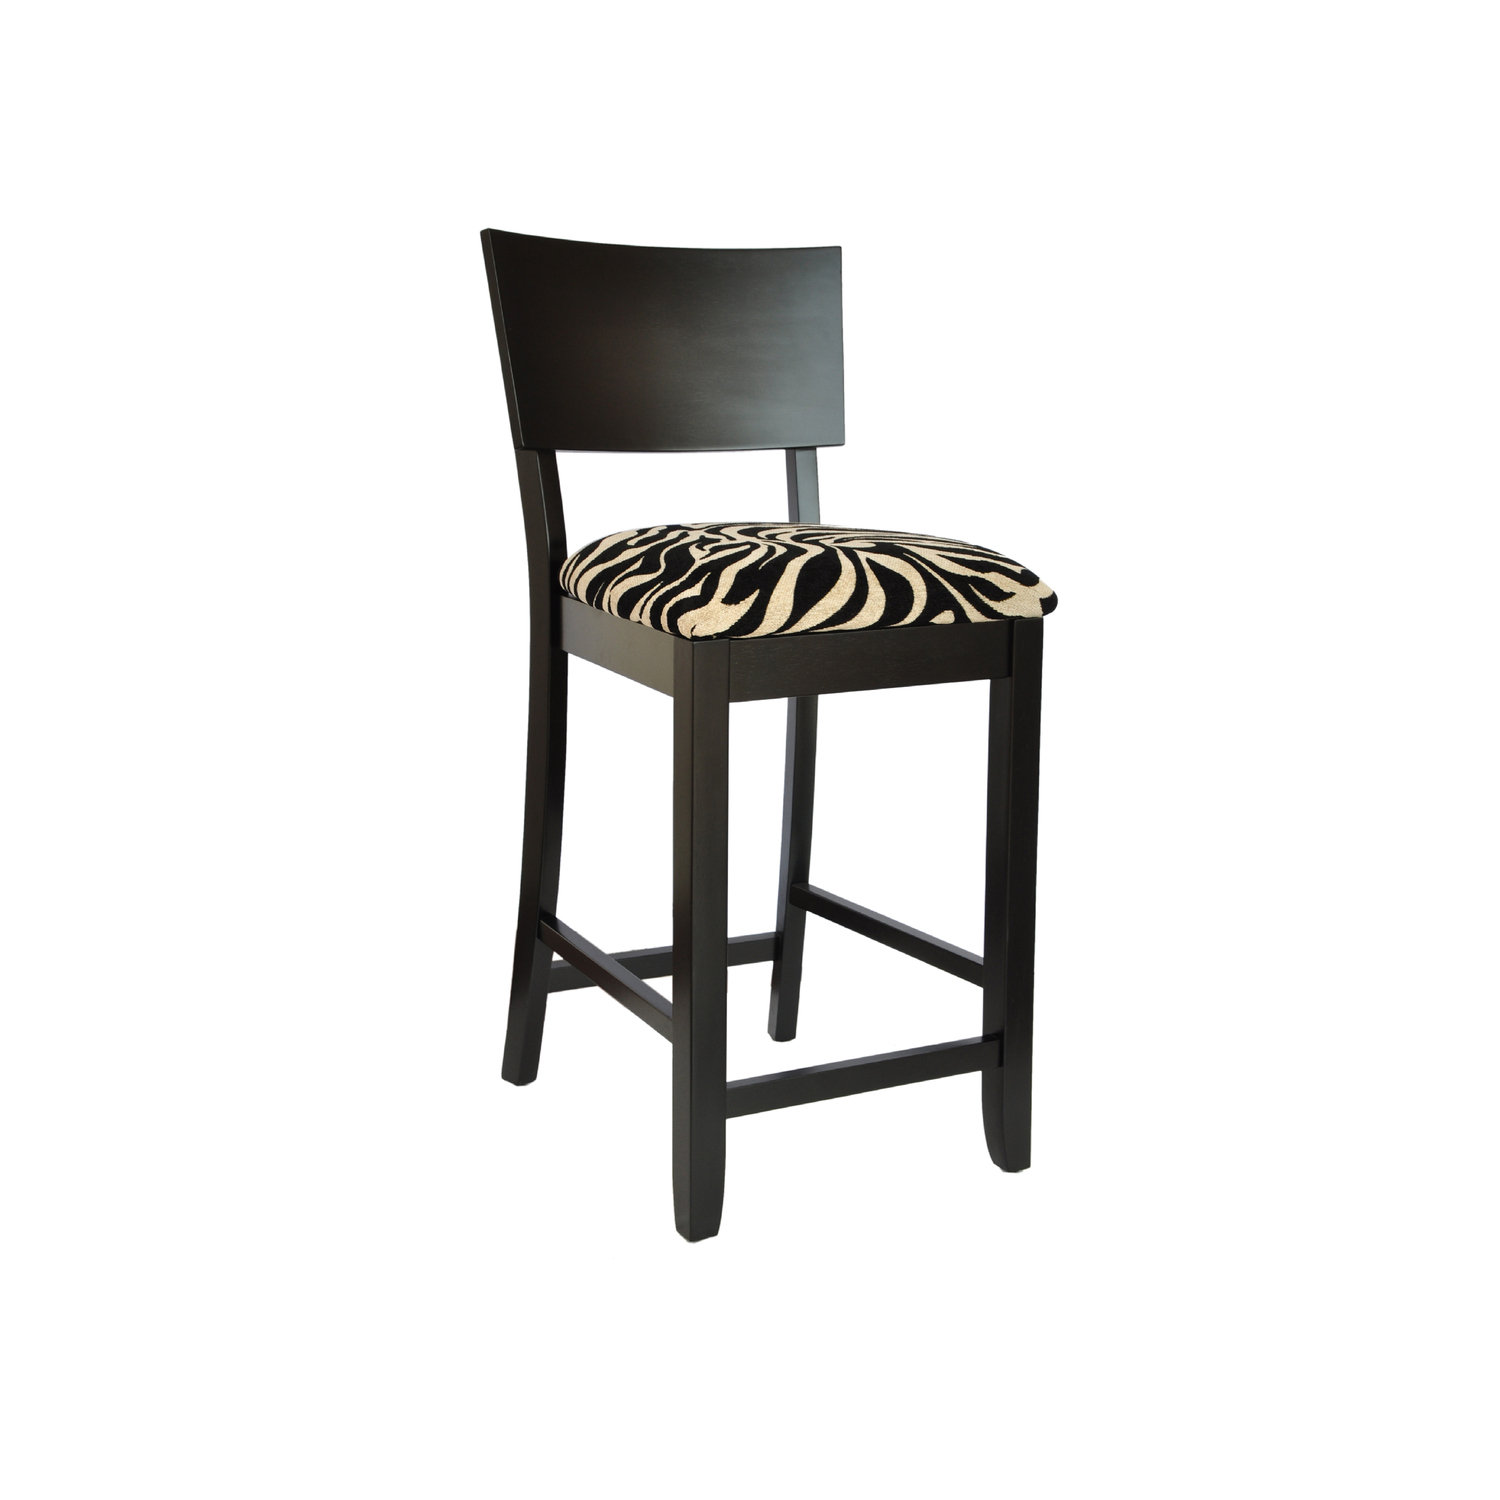 Powell Black Bent Back Counter Stool With Zebra Pattern